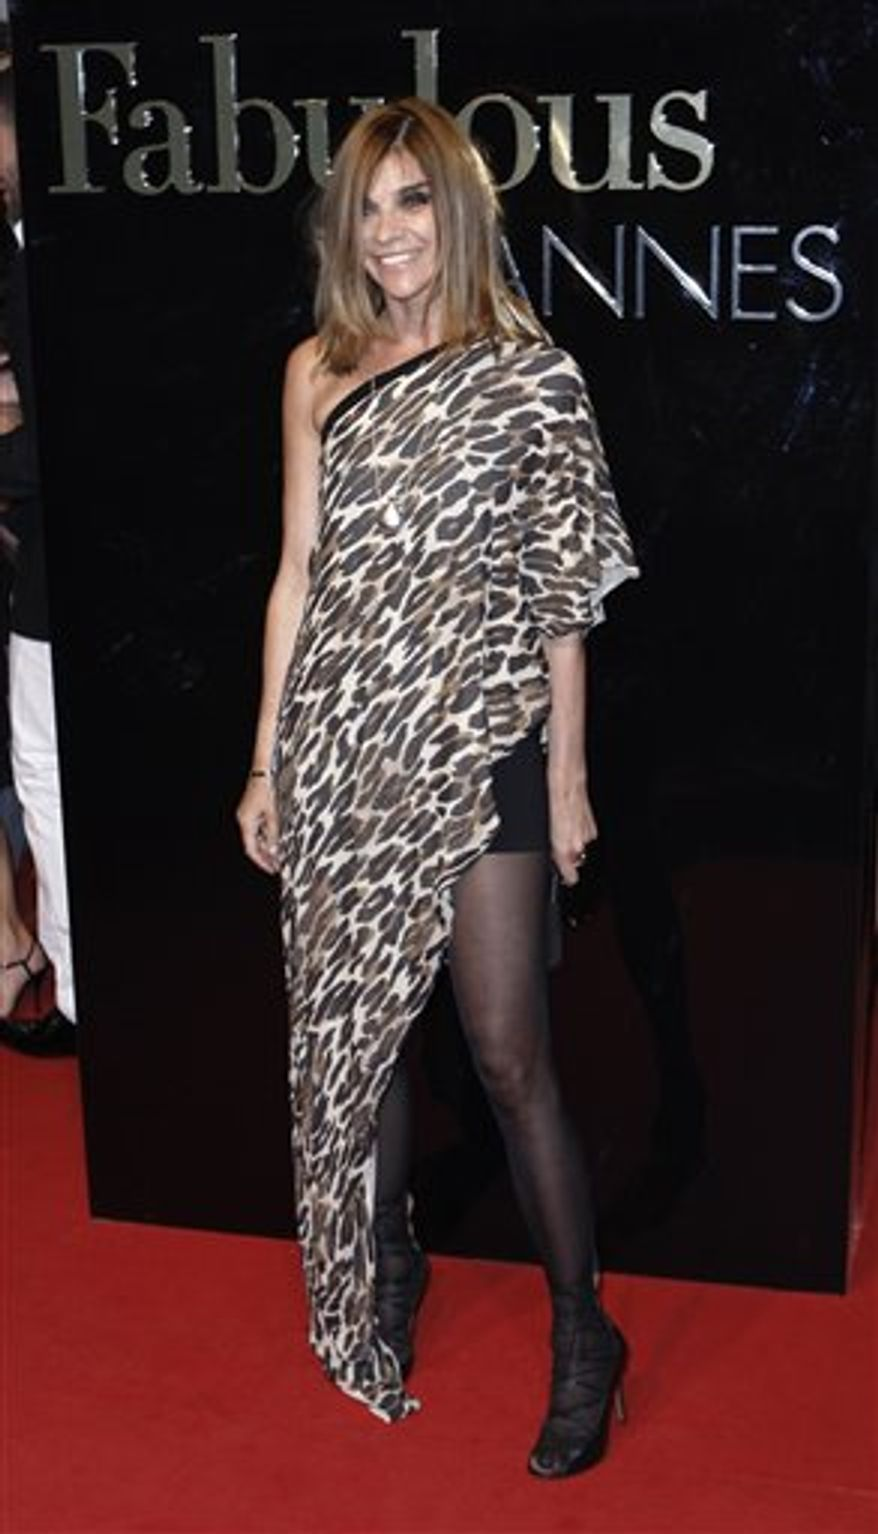 """In this Saturday, May 23, 2009 photo, Carine Roitfeld arrives for the Dolce & Gabbana party, during the 62nd International film festival in Cannes, southern France. Paris Vogue says its editor-in-chief, Carine Roitfeld, has decided to leave after a 10-year tenure in which the French fashion monthly became """"a worldwide reference and indispensable magazine."""" (AP Photo/Matt Sayles)"""